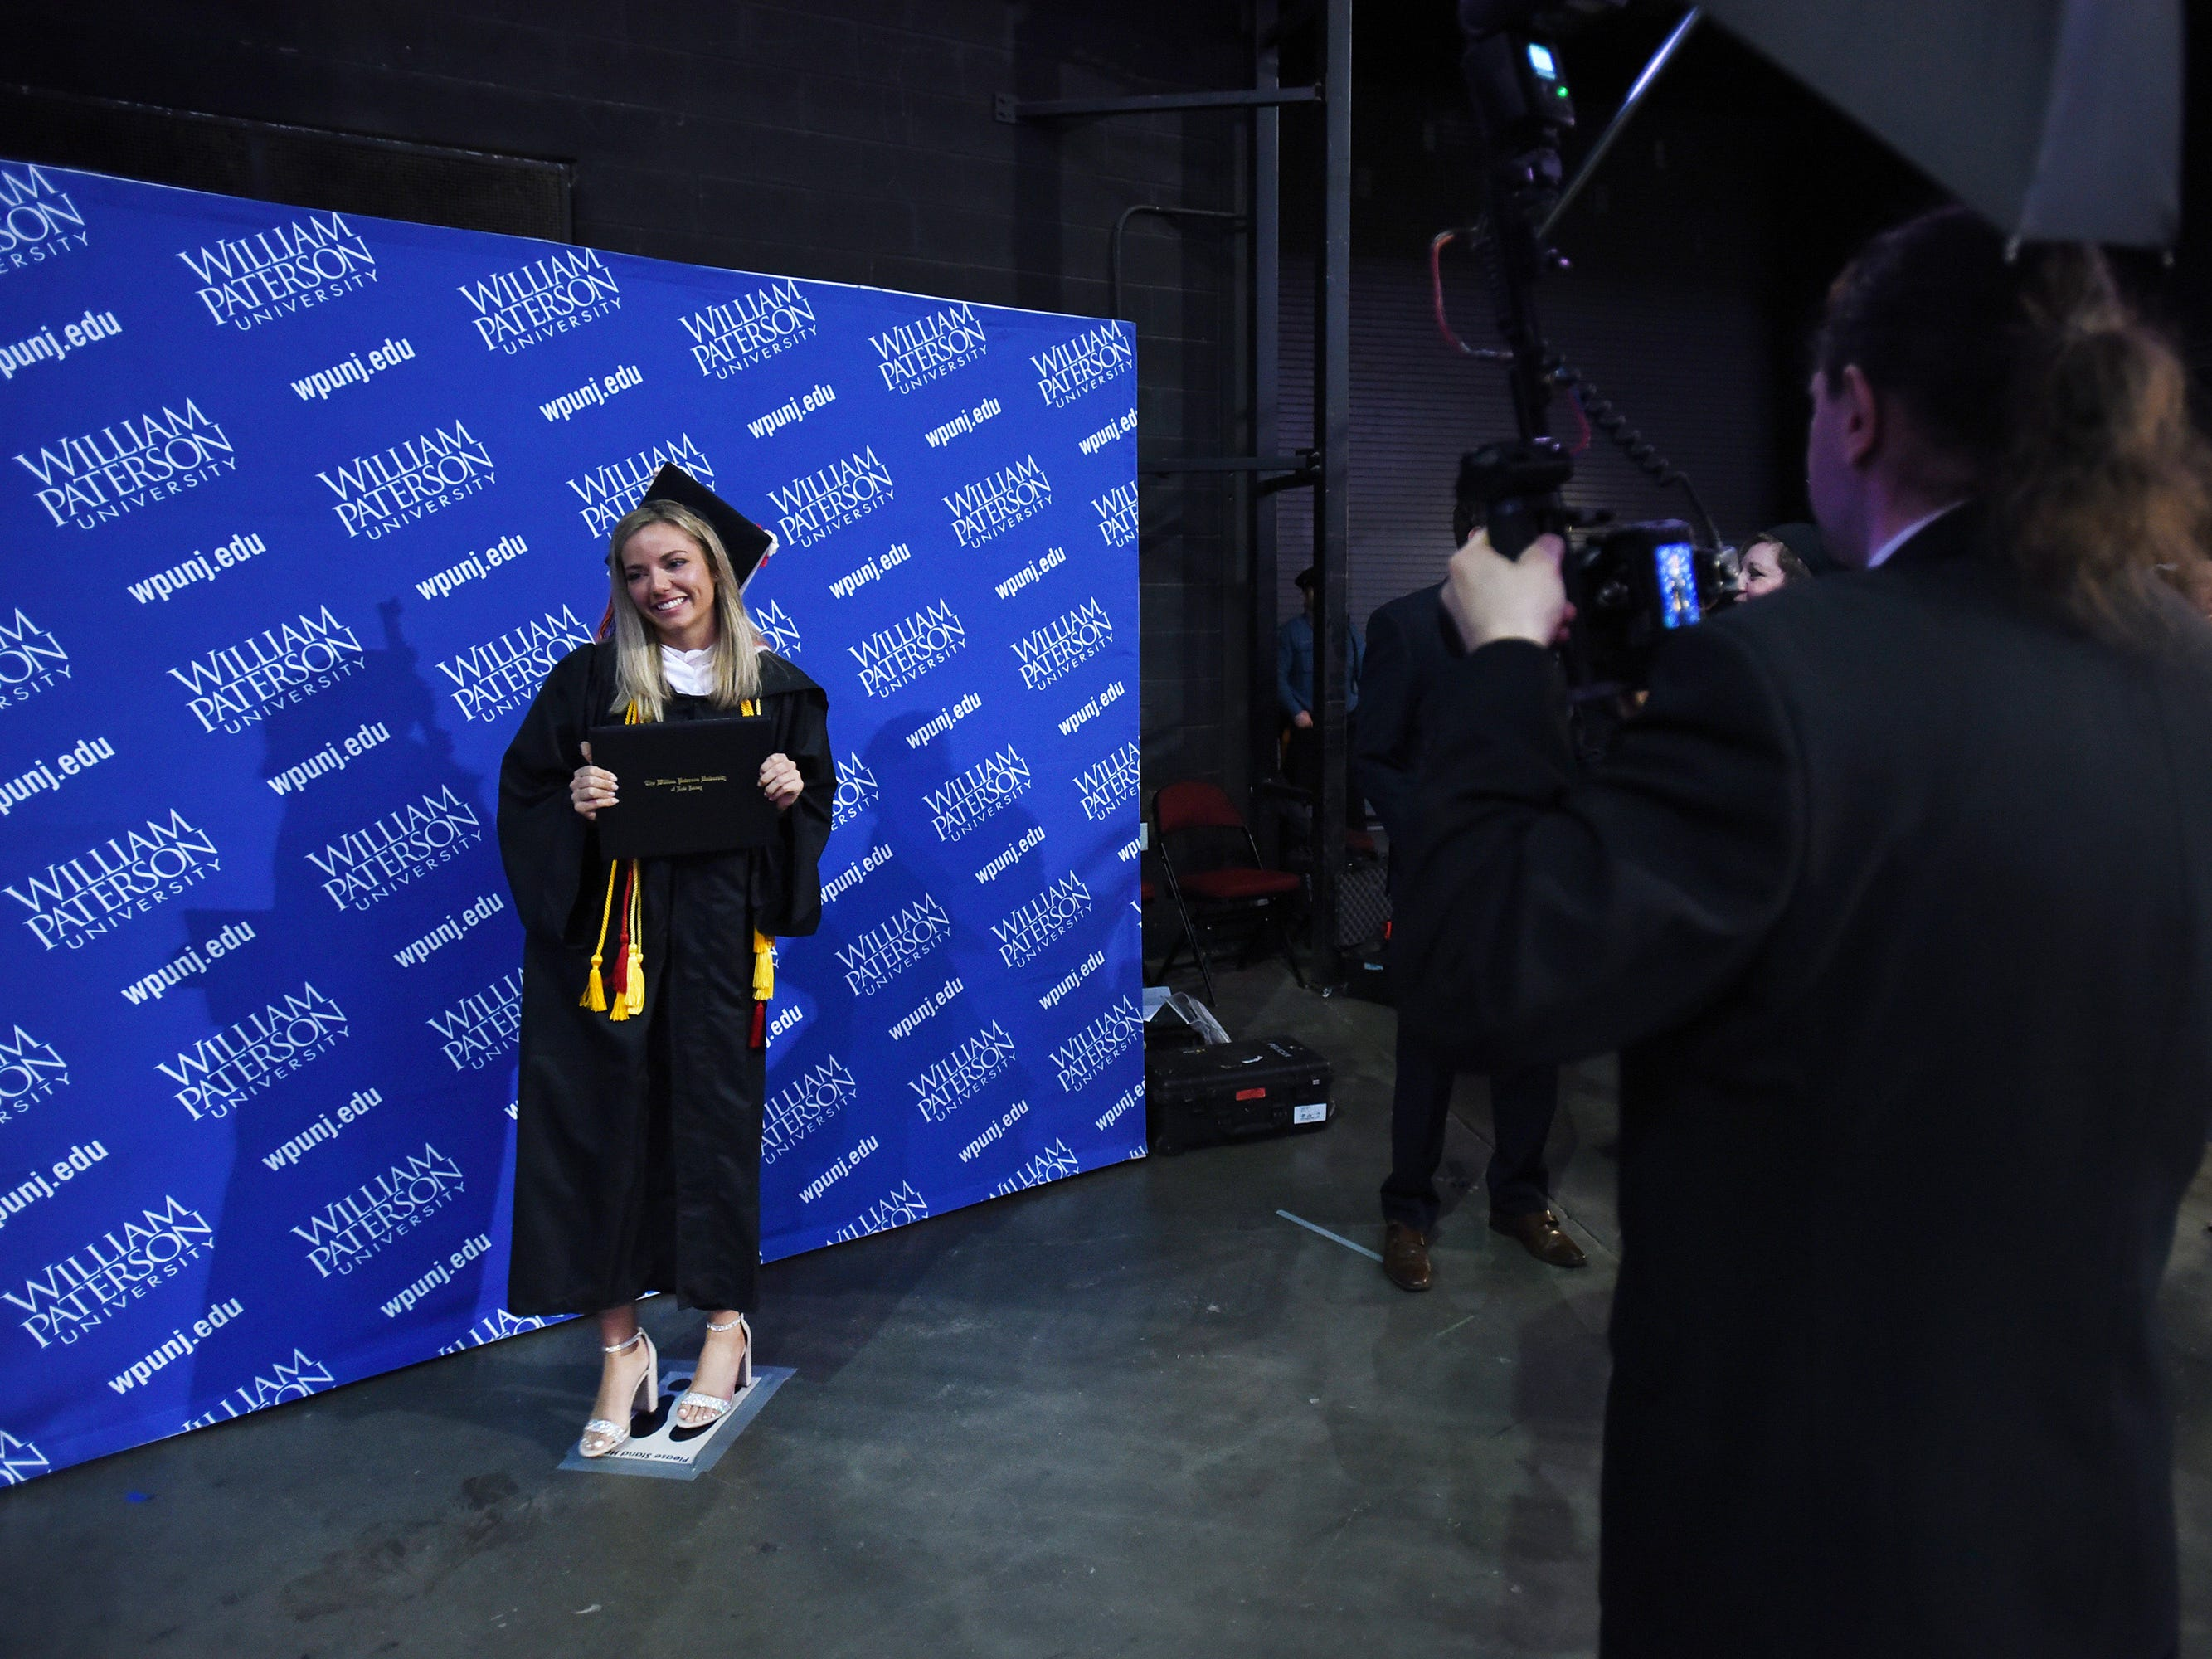 A graduate has her picture taken during the William Paterson University 2019 Commencement at the Prudential Center in Newark on 05/15/19.